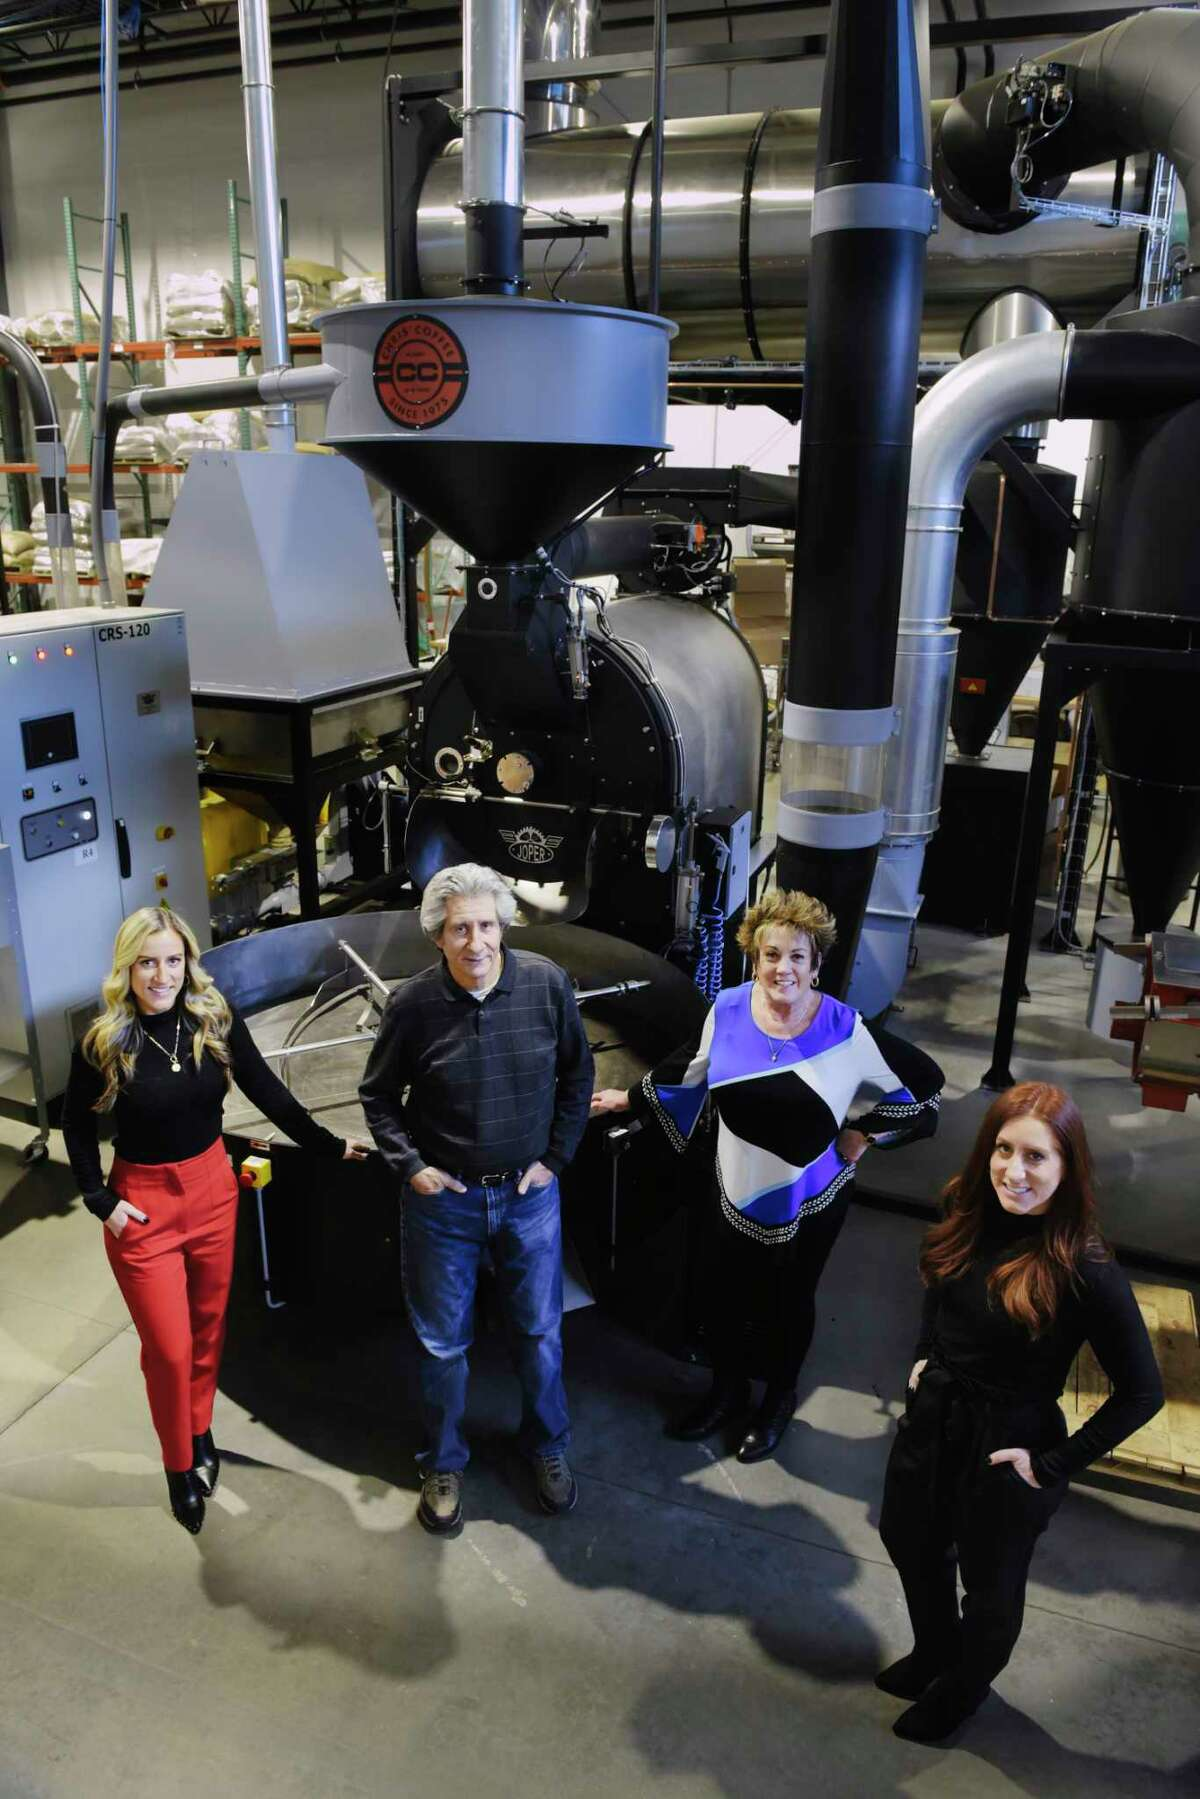 Chris' Coffee family members, Taylor Nachtrieb, left, operations manager, her dad, Chris Nachtrieb, president, her mom, Pat Nachtrieb, vice president, and her sister, MacKenzie Halse, director of sales, stand next to their company's newest coffee roaster, a 120 kilo Joper coffee roaster, on Wednesday, Feb. 10, 2021, in Latham, N.Y. (Paul Buckowski/Times Union)